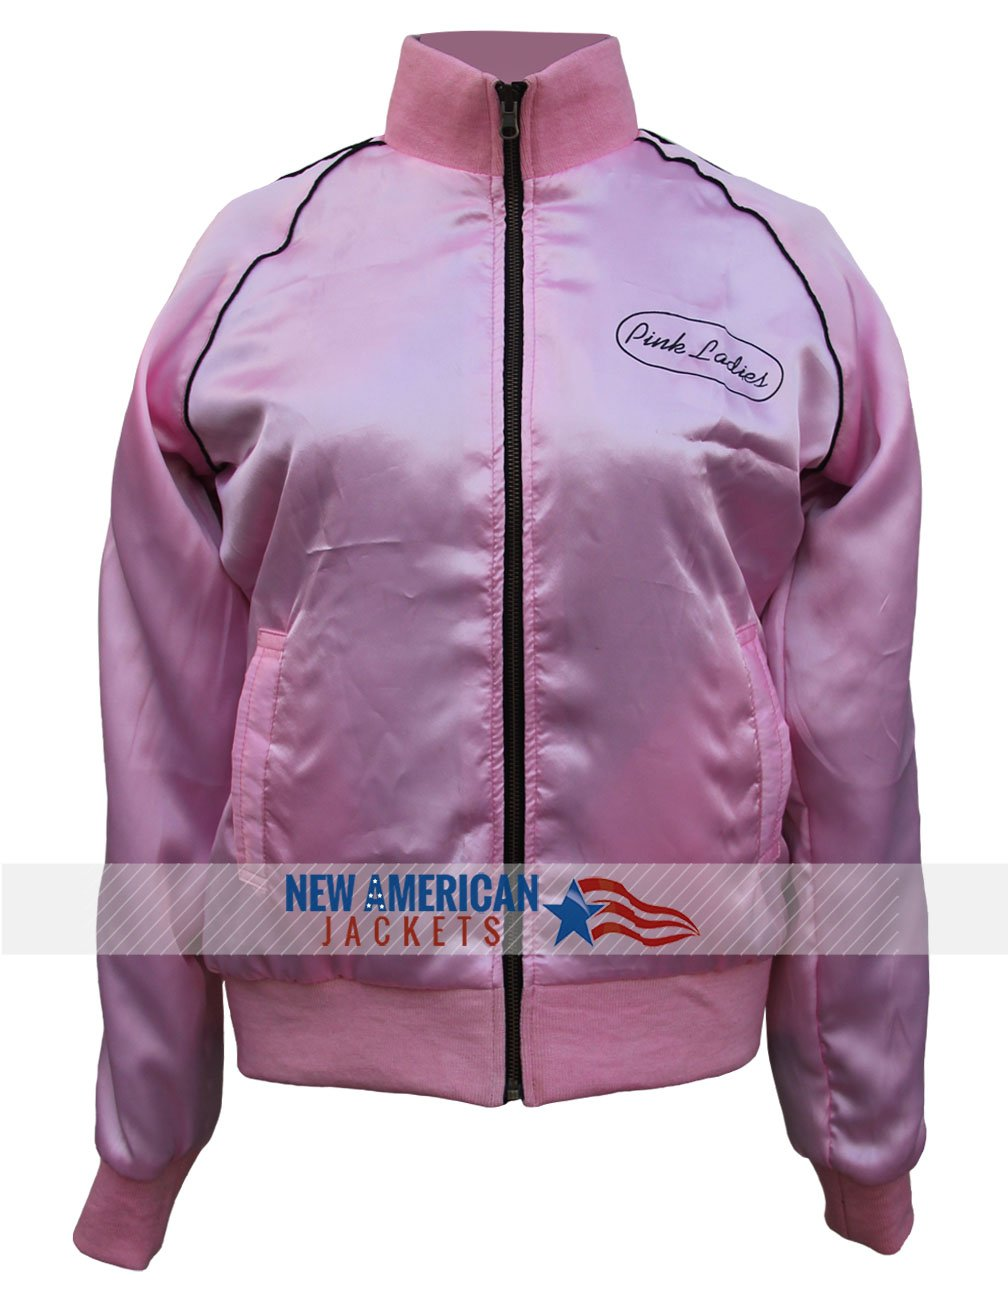 When you wear our Adult Grease Pink Ladies Jacket you might just break out spontaneously into song! You go together like the bop shoo bop shoo bop. r0nd.tk r0nd.tk Gifts Gifts for Men Gifts for Women Gifts for Boys. Gifts for Girls NEW! Themes Clothing. FUN Wear FUN Suits Toys Home & Office.